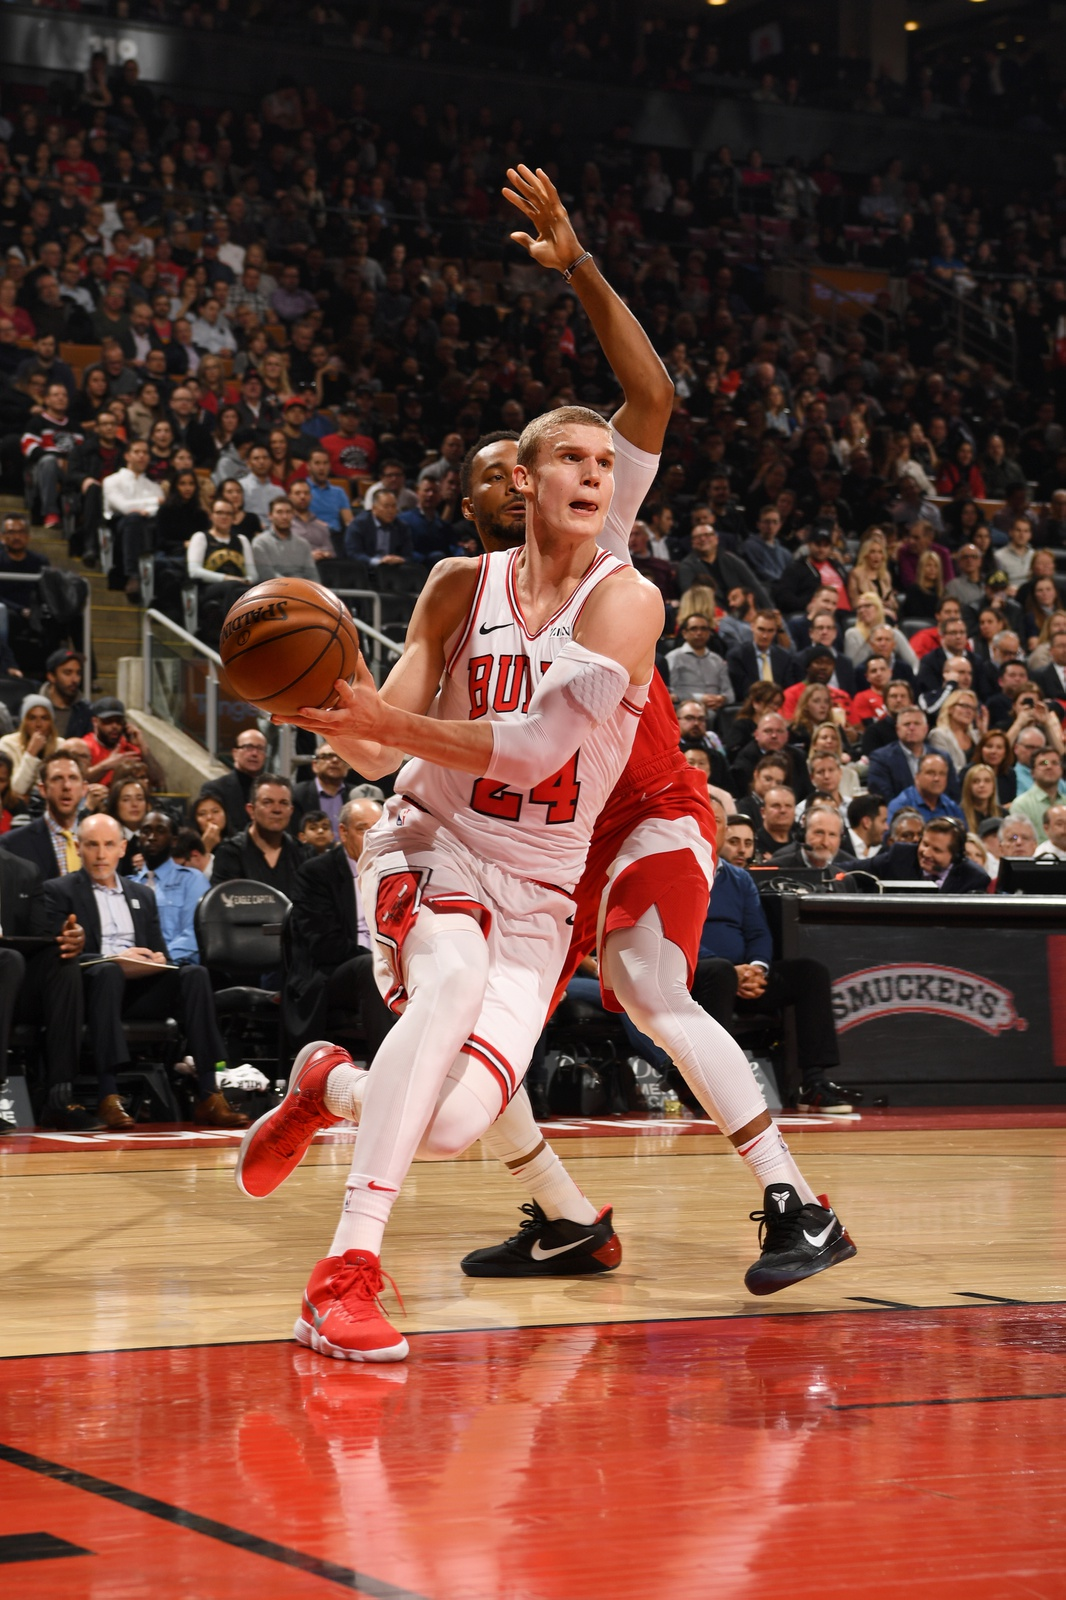 Lauri Markkanen #24 of the Chicago Bulls drives to the basket against the Toronto Raptors on March 26, 2019 at the Scotiabank Arena in Toronto, Ontario, Canada.